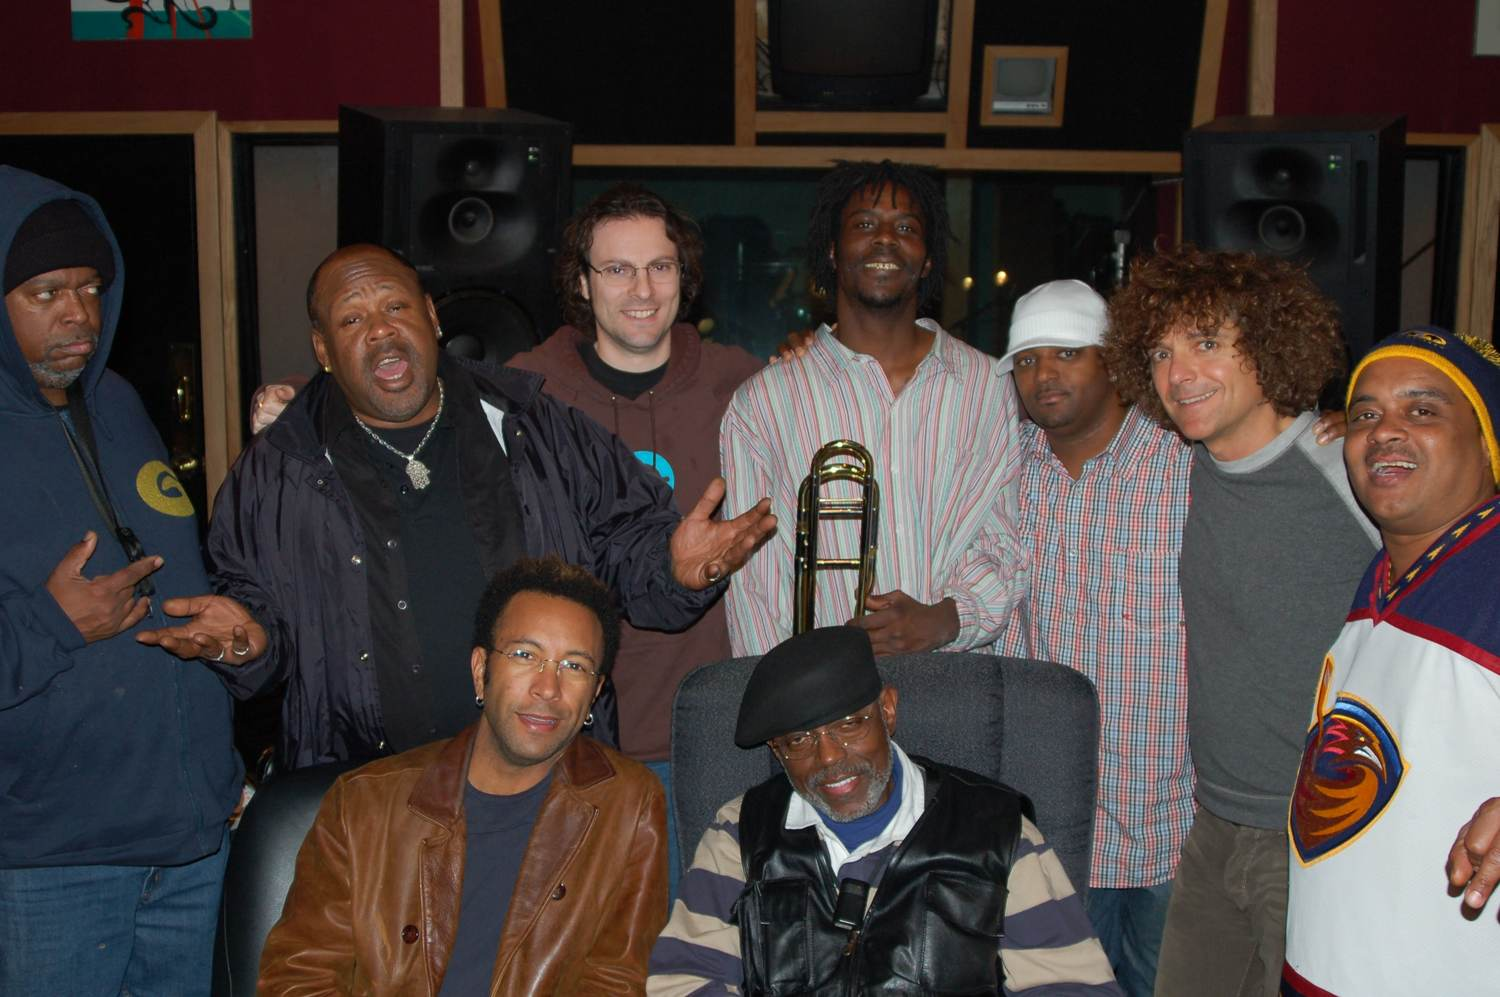 "Kevin Harris, Kirk Joseph, Shawn Amos, Clint Bennett, Roger Lewis, ""Peanut"" Andrews, Terrence Higgins, A. Marinelli, ""ET"" Towns. Dirty Dozen Brass Band ""What's Gong On"" Bismeaux Studio, Austin TX 2006"